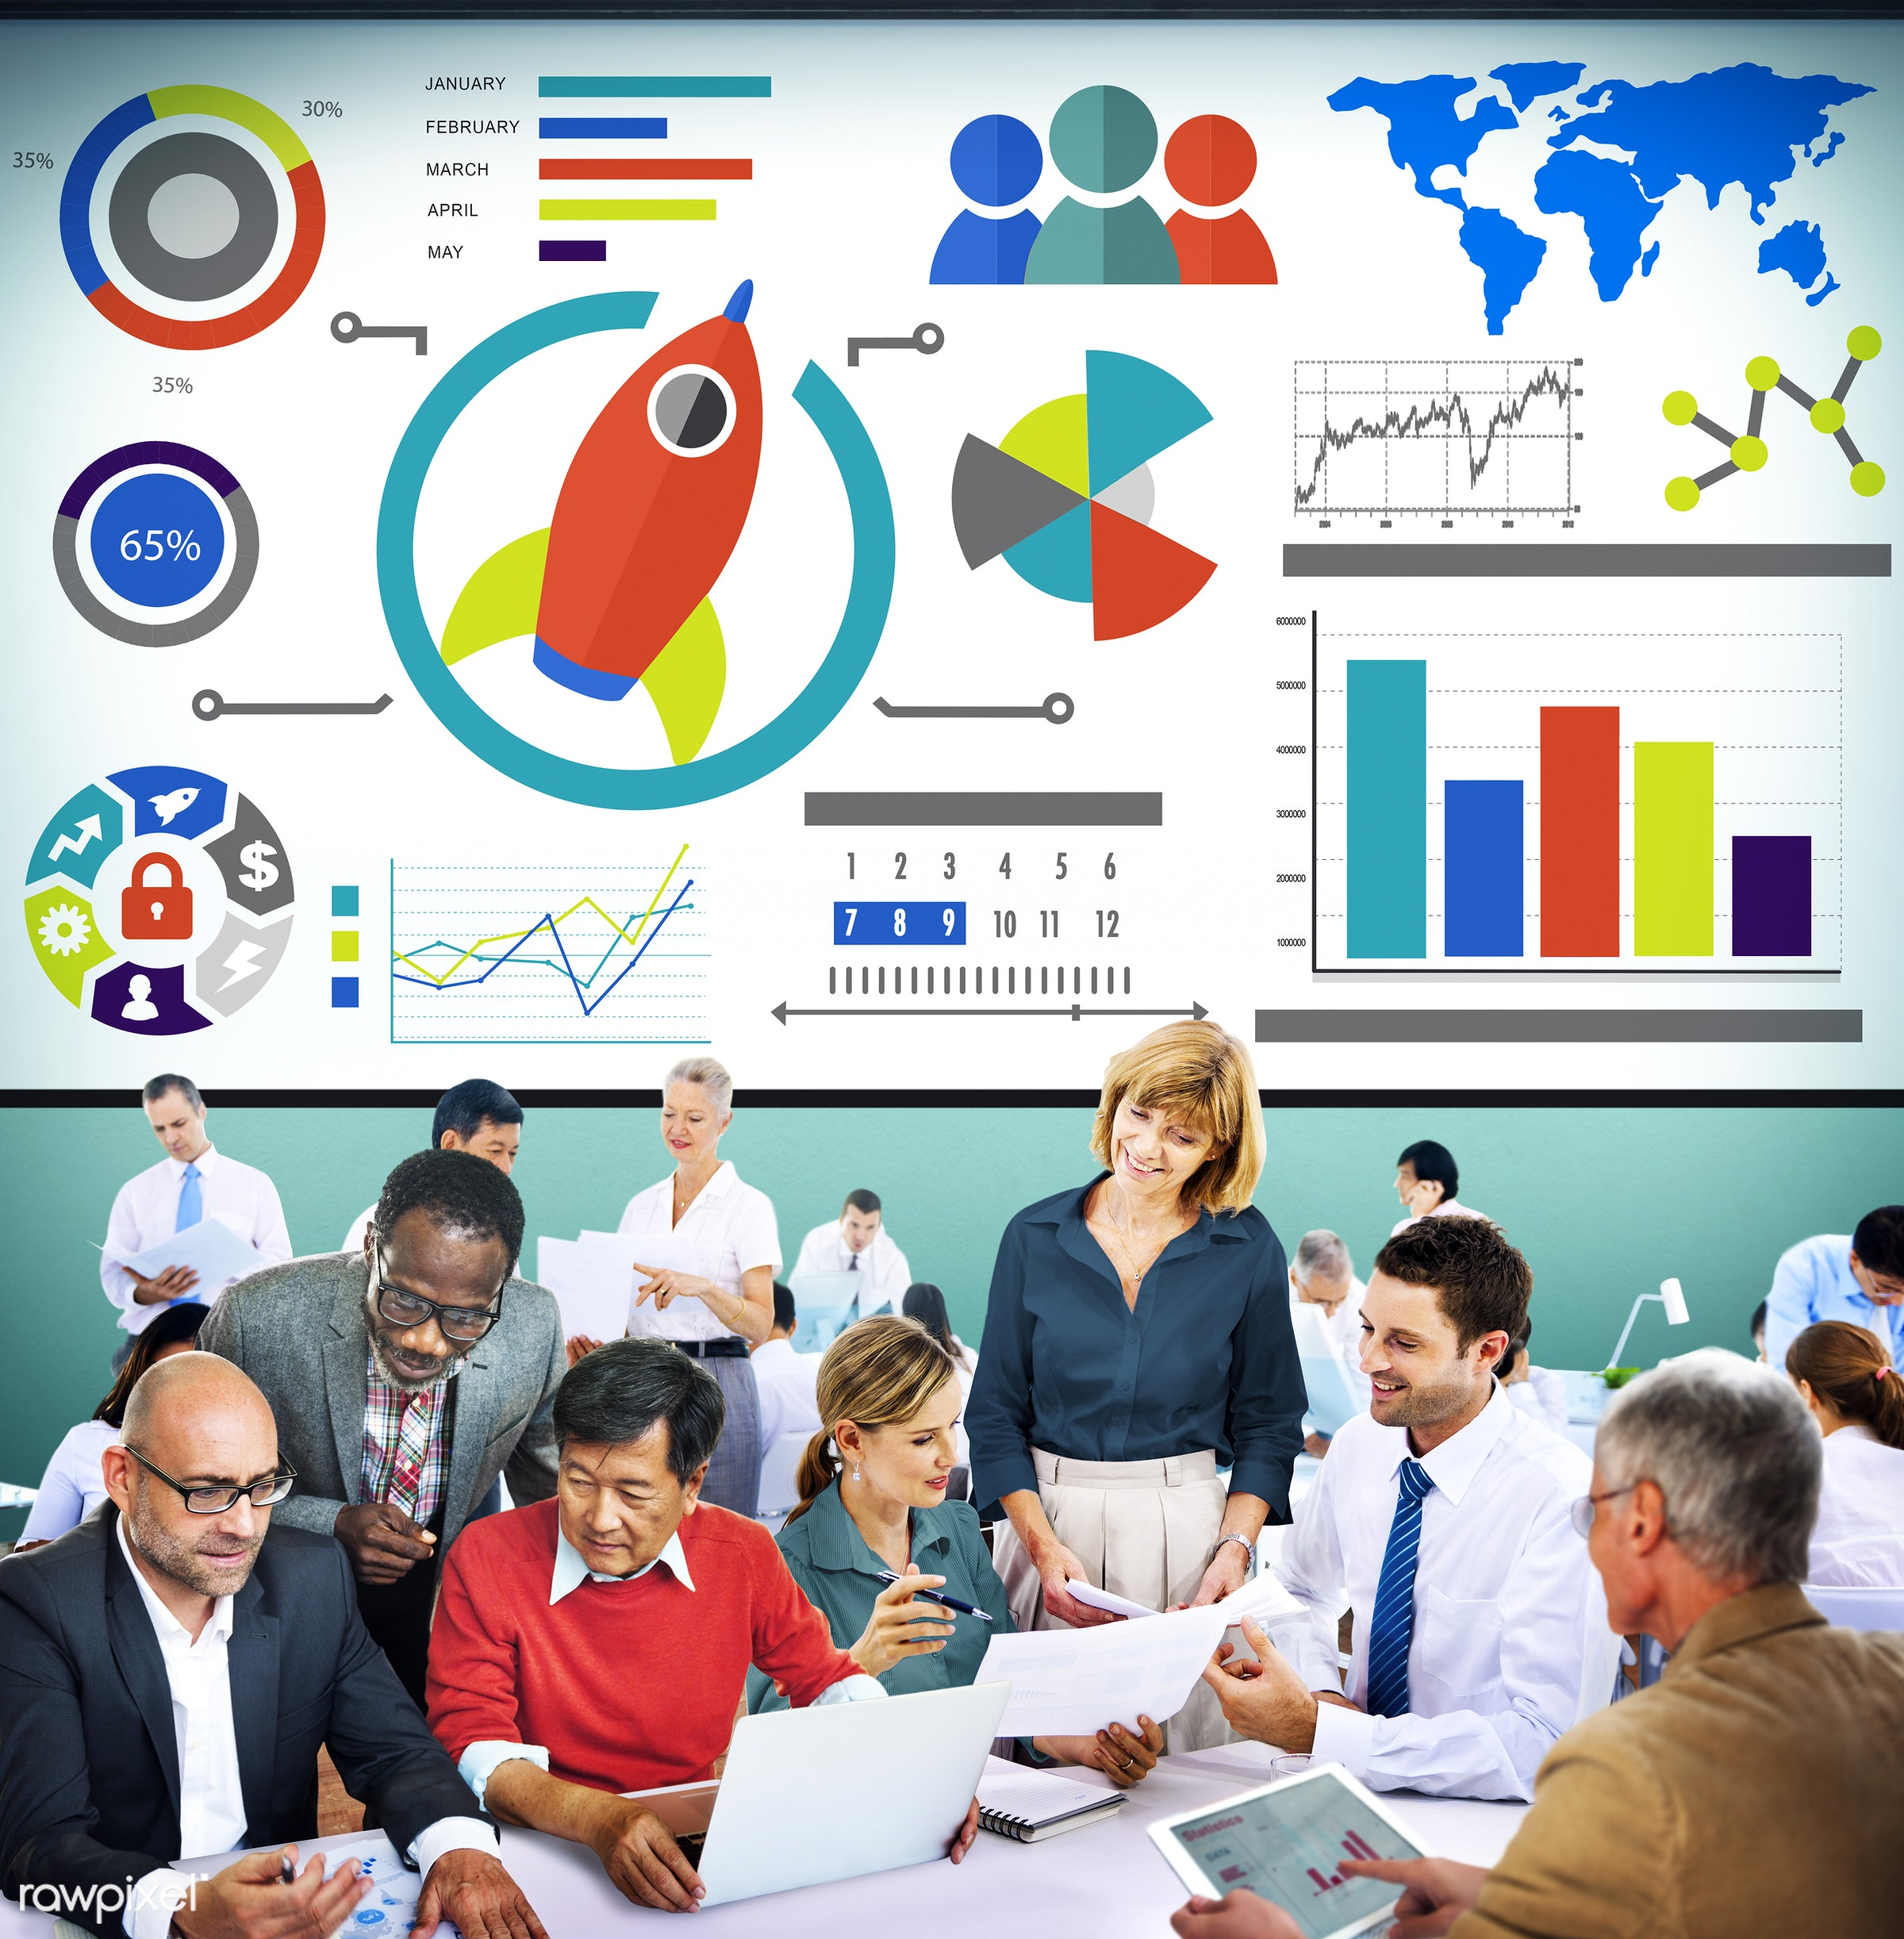 accounting, analysis, bar graph, business, business people, businessmen, businesswomen, busy, chart, colorful, communication...